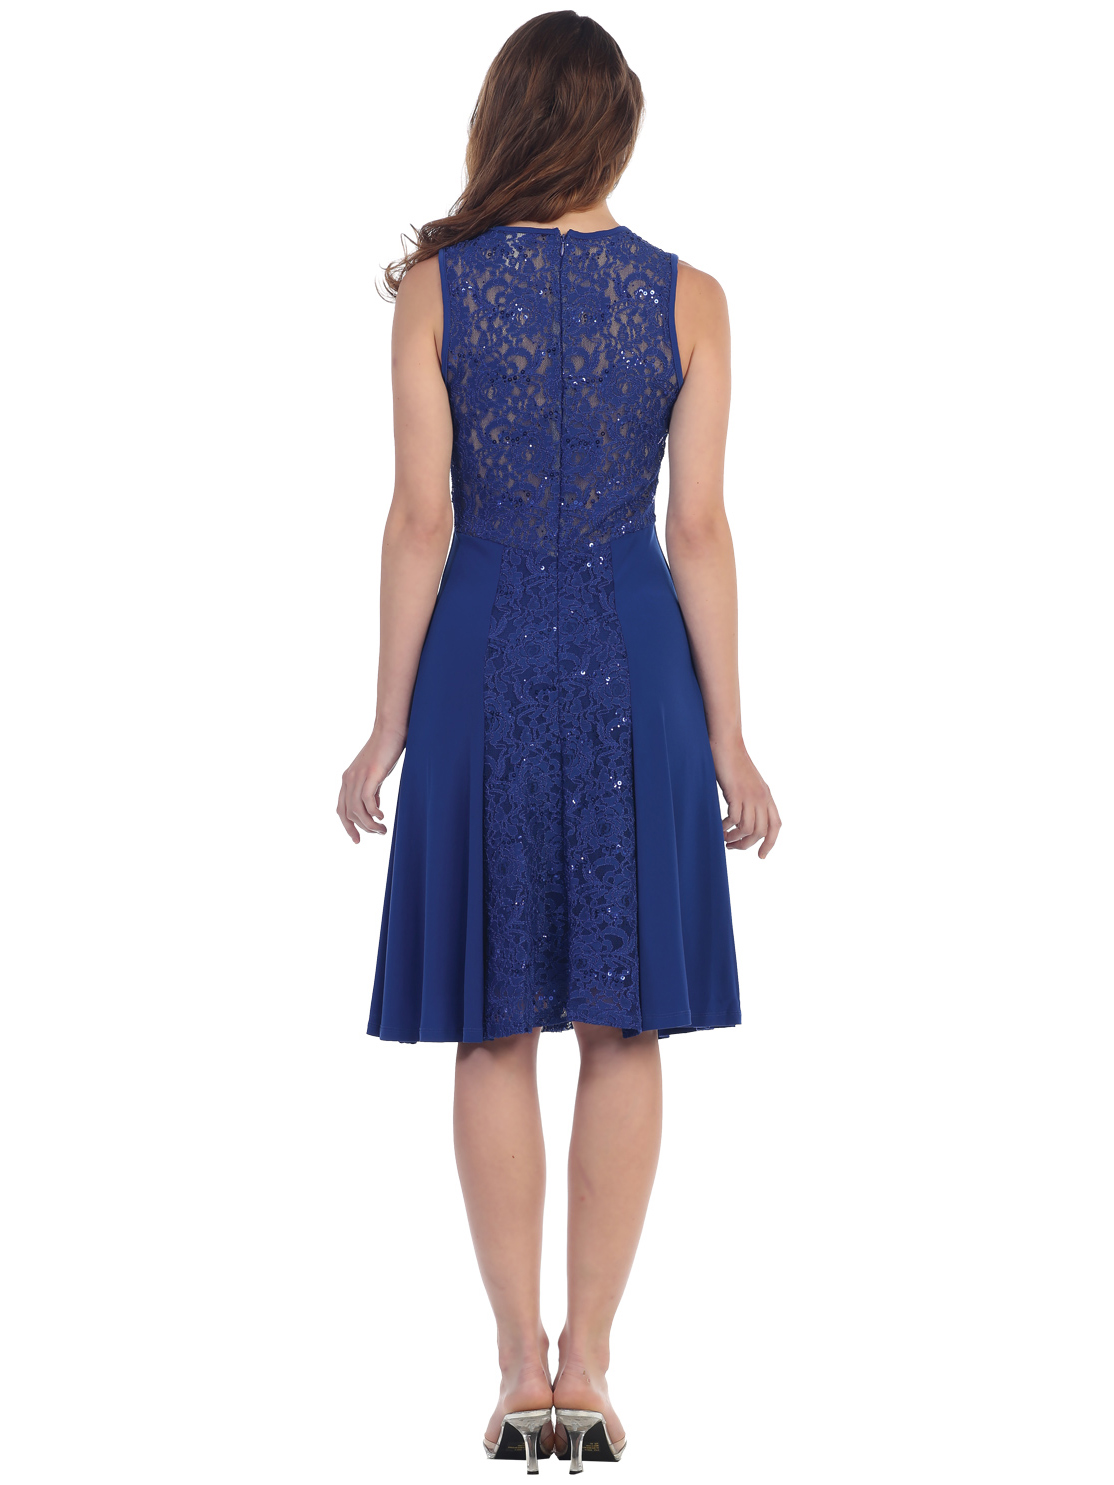 Knee Length Cocktail Dress with Lace | Sung Boutique L.A.